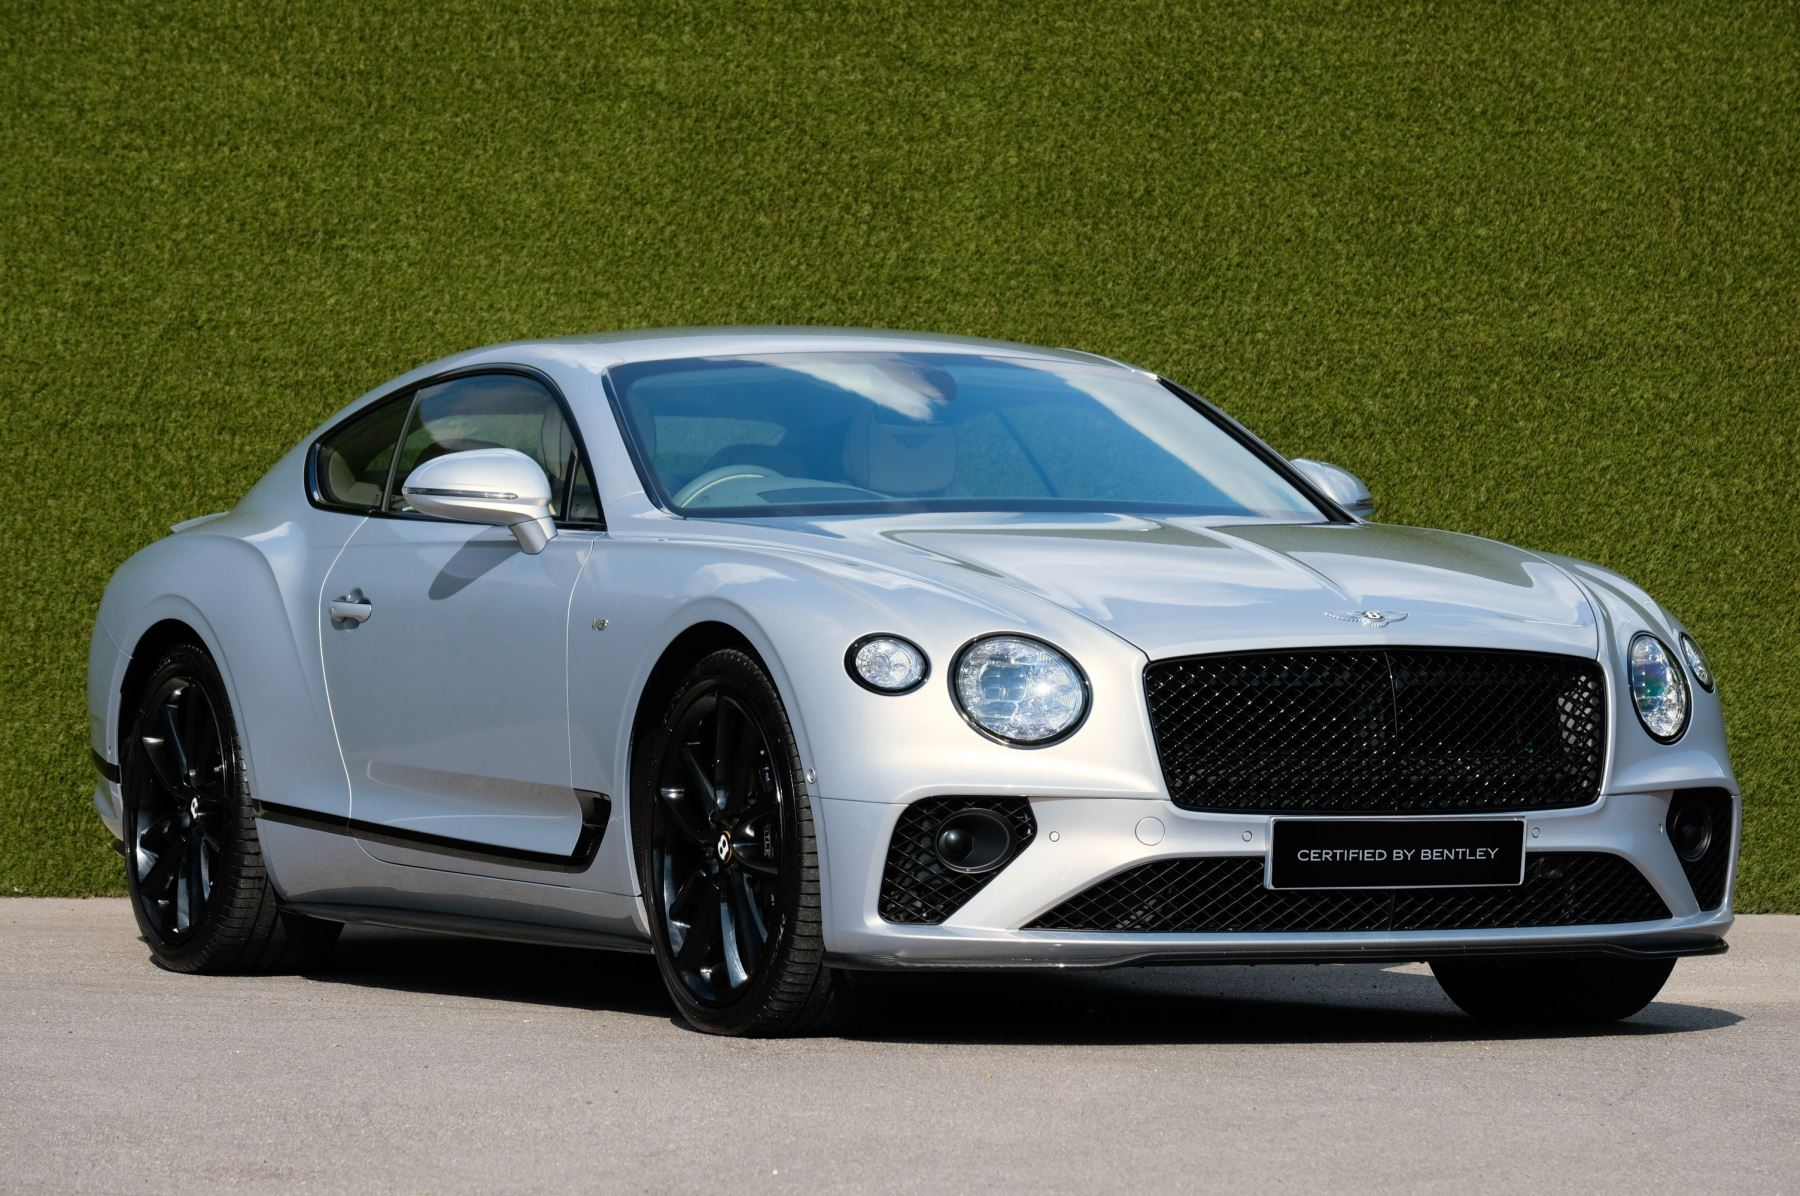 Bentley Continental GT 4.0 V8 - Mulliner Driving Specification with Black Painted Wheels - Touring and Centenary Spec Automatic 2 door Coupe